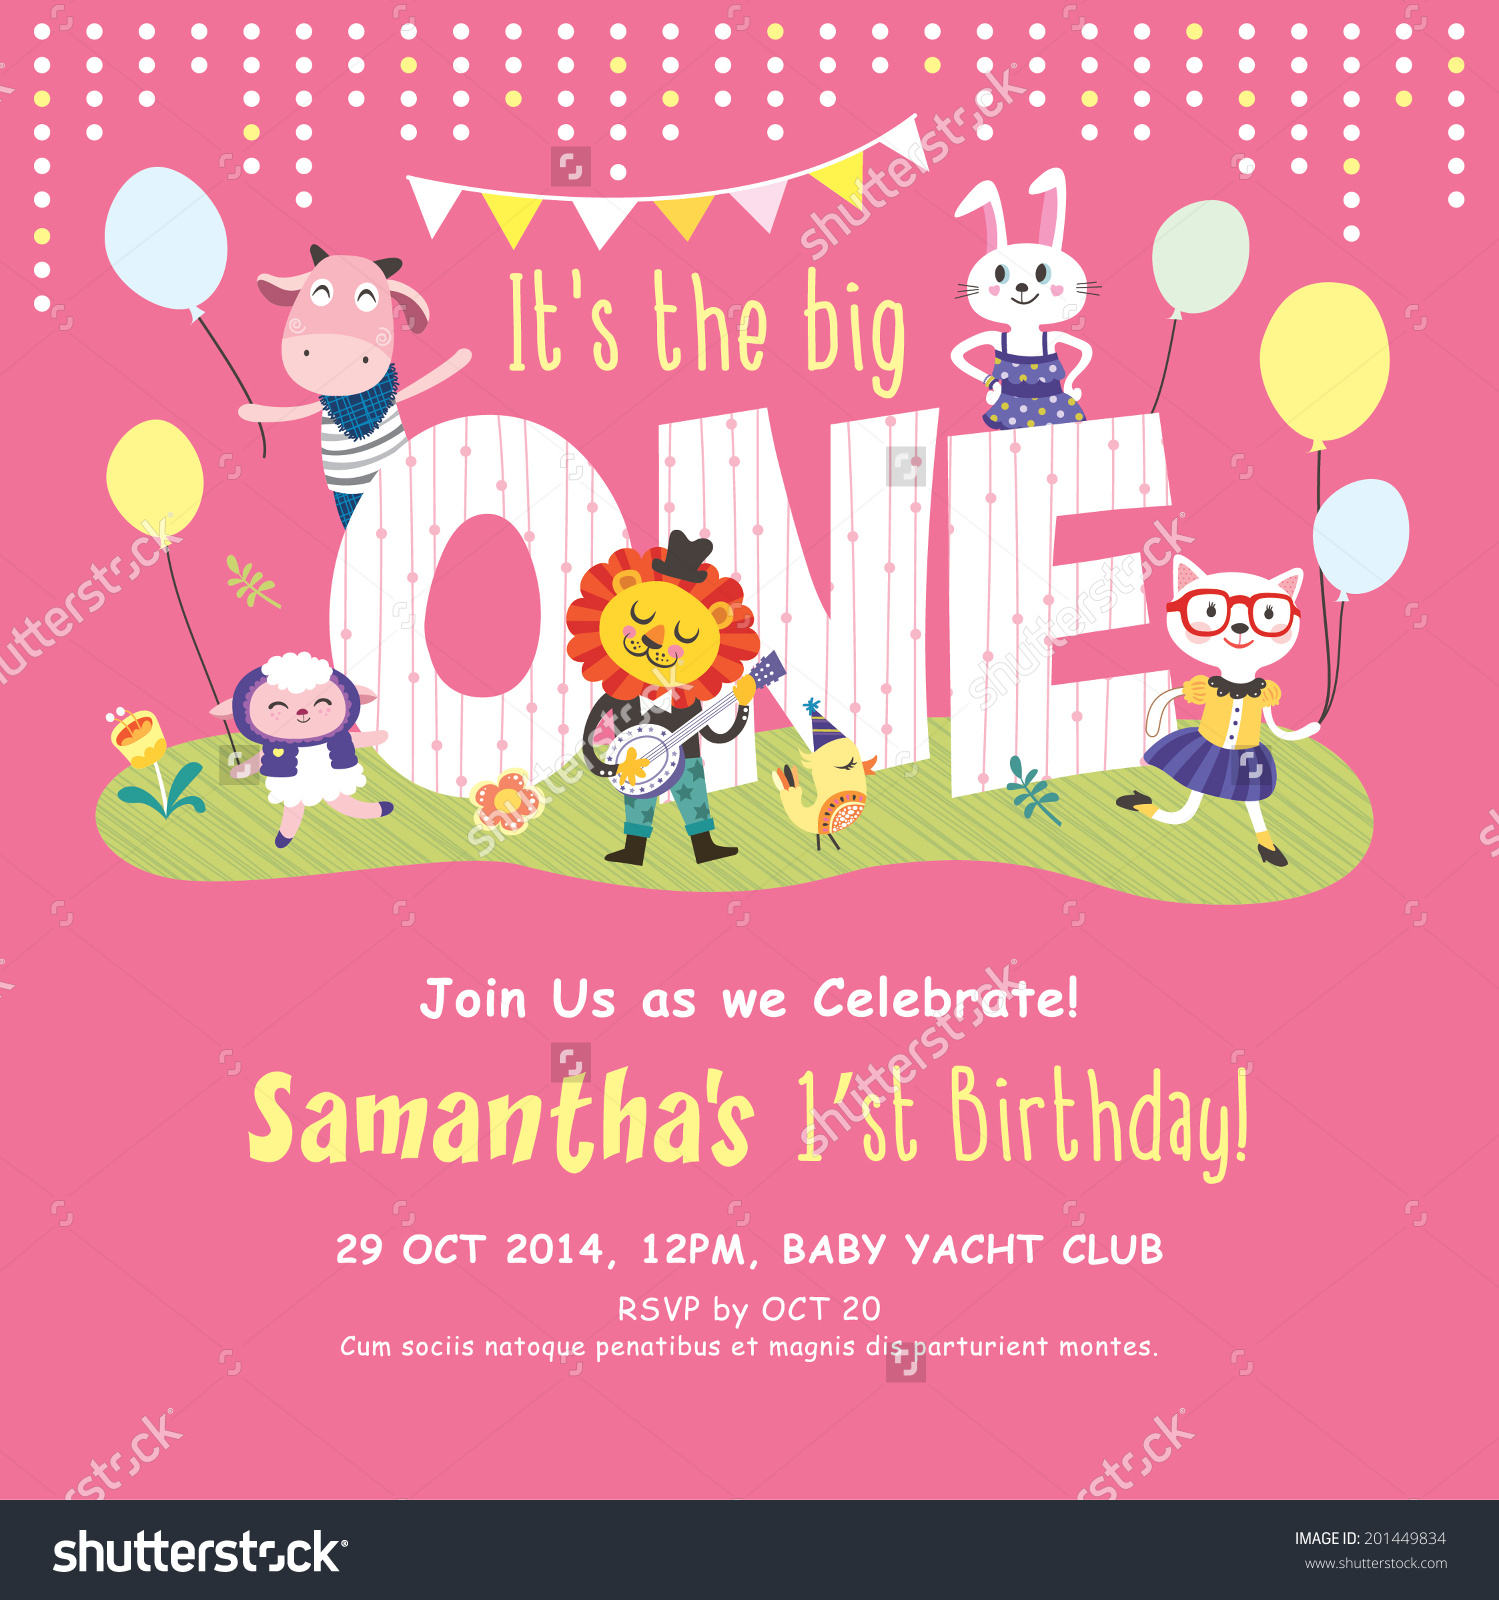 birthday celebration invitation card ; 1st-birthday-invitation-card-indian-style-fresh-invitation-card-ideas-for-birthday-party-image-collections-party-of-1st-birthday-invitation-card-indian-style